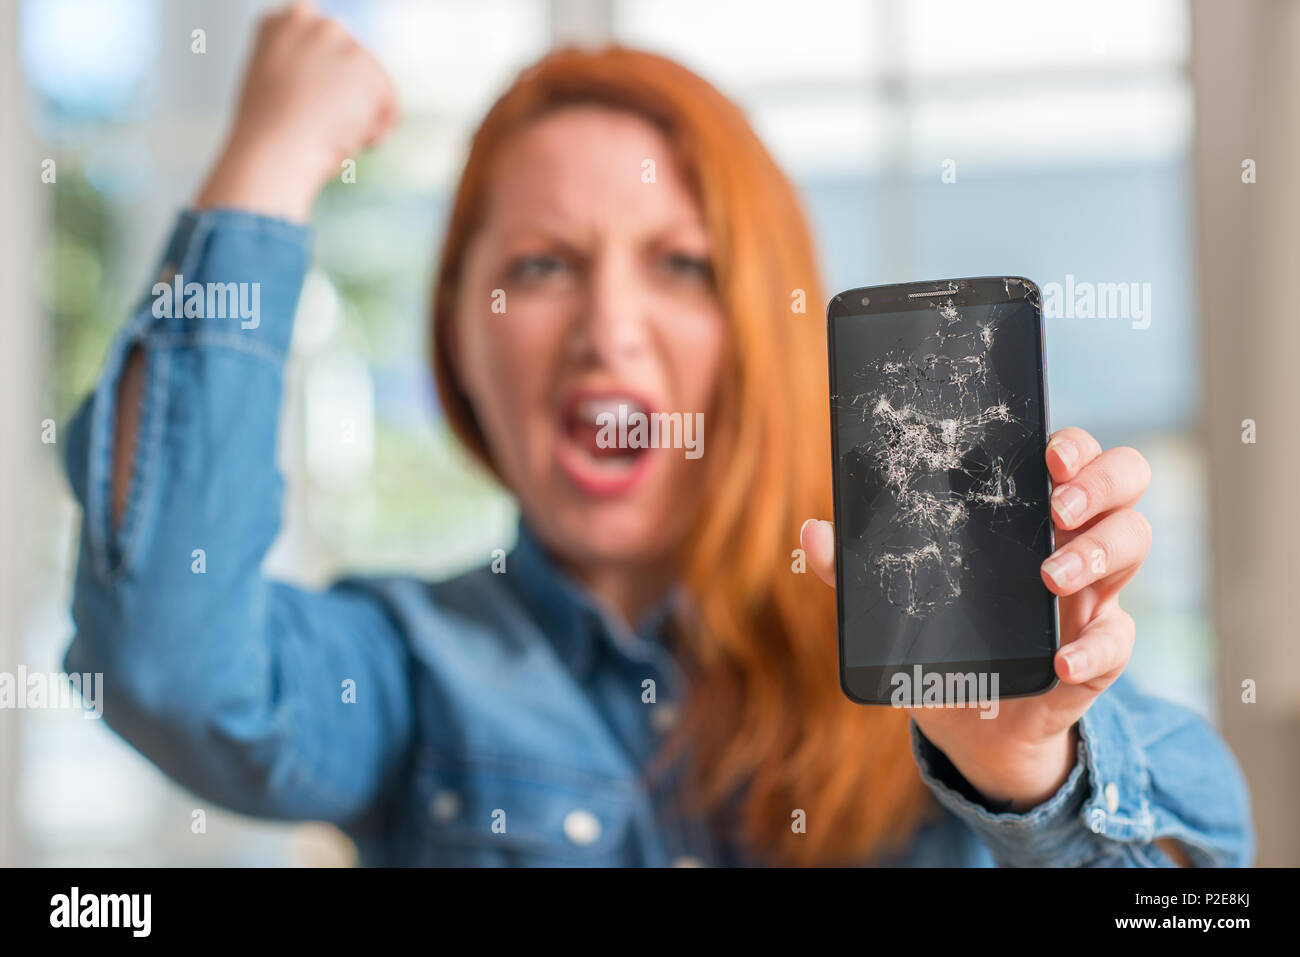 Angry woman breaks annoying womans phone